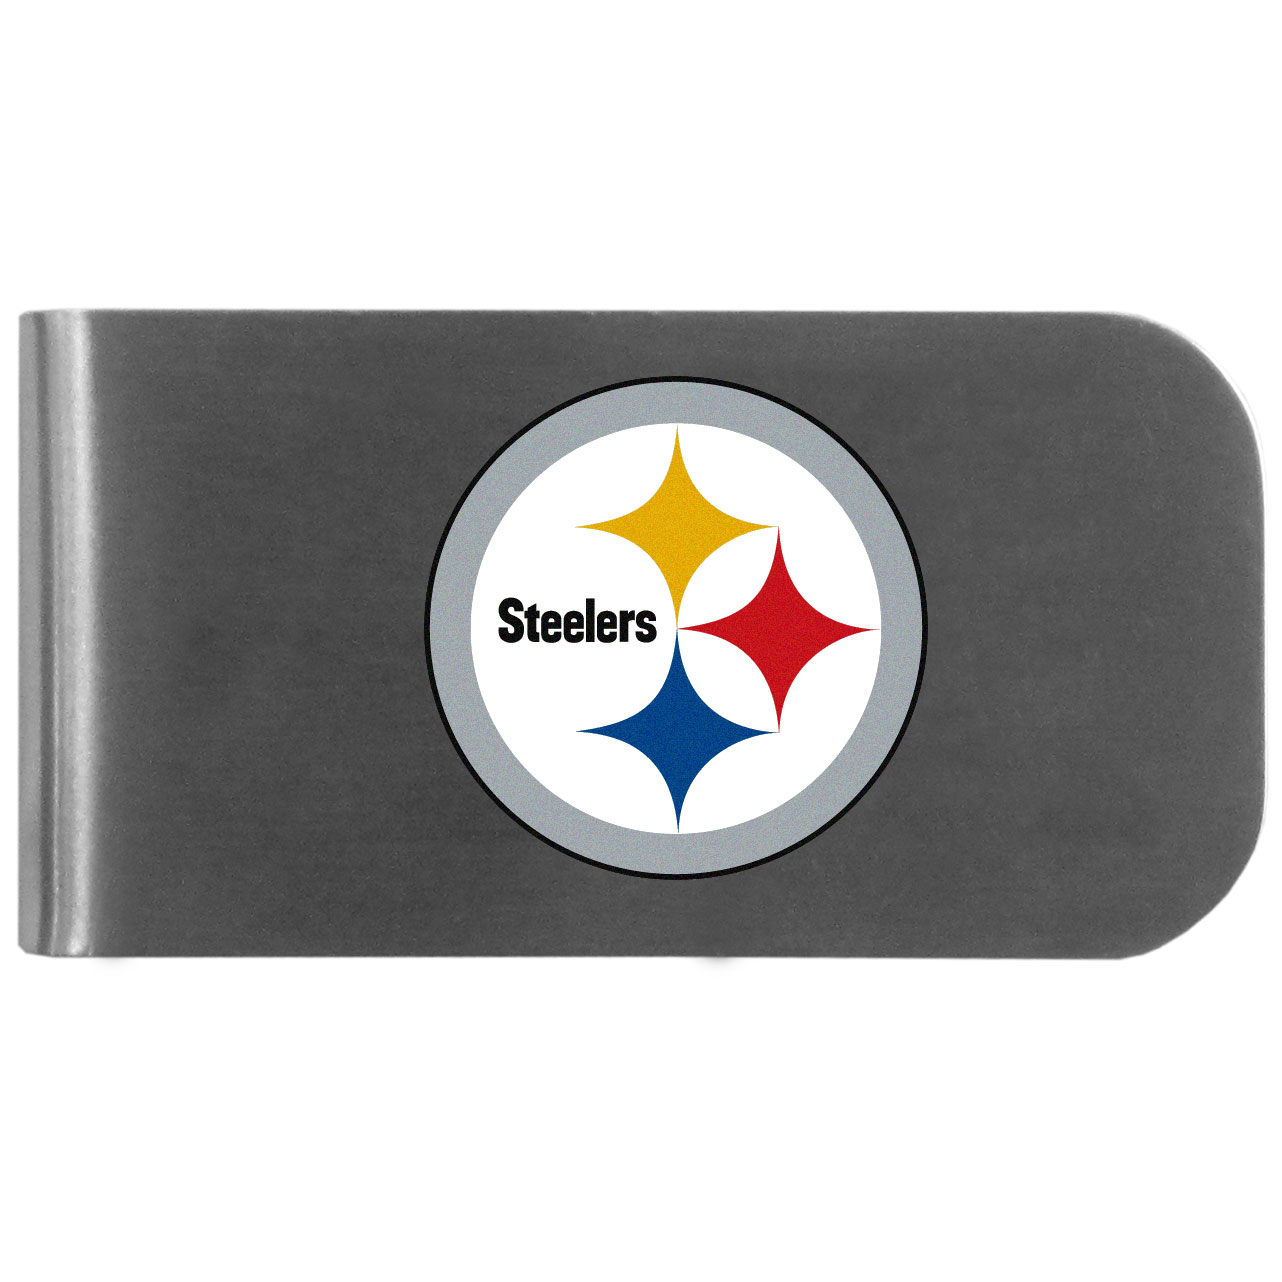 Pittsburgh Steelers Logo Bottle Opener Money Clip - This unique money clip features a classic, brushed-metal finish with a handy bottle opener feature on the back. The clip has the Pittsburgh Steelers logo expertly printed on the front of the clip.